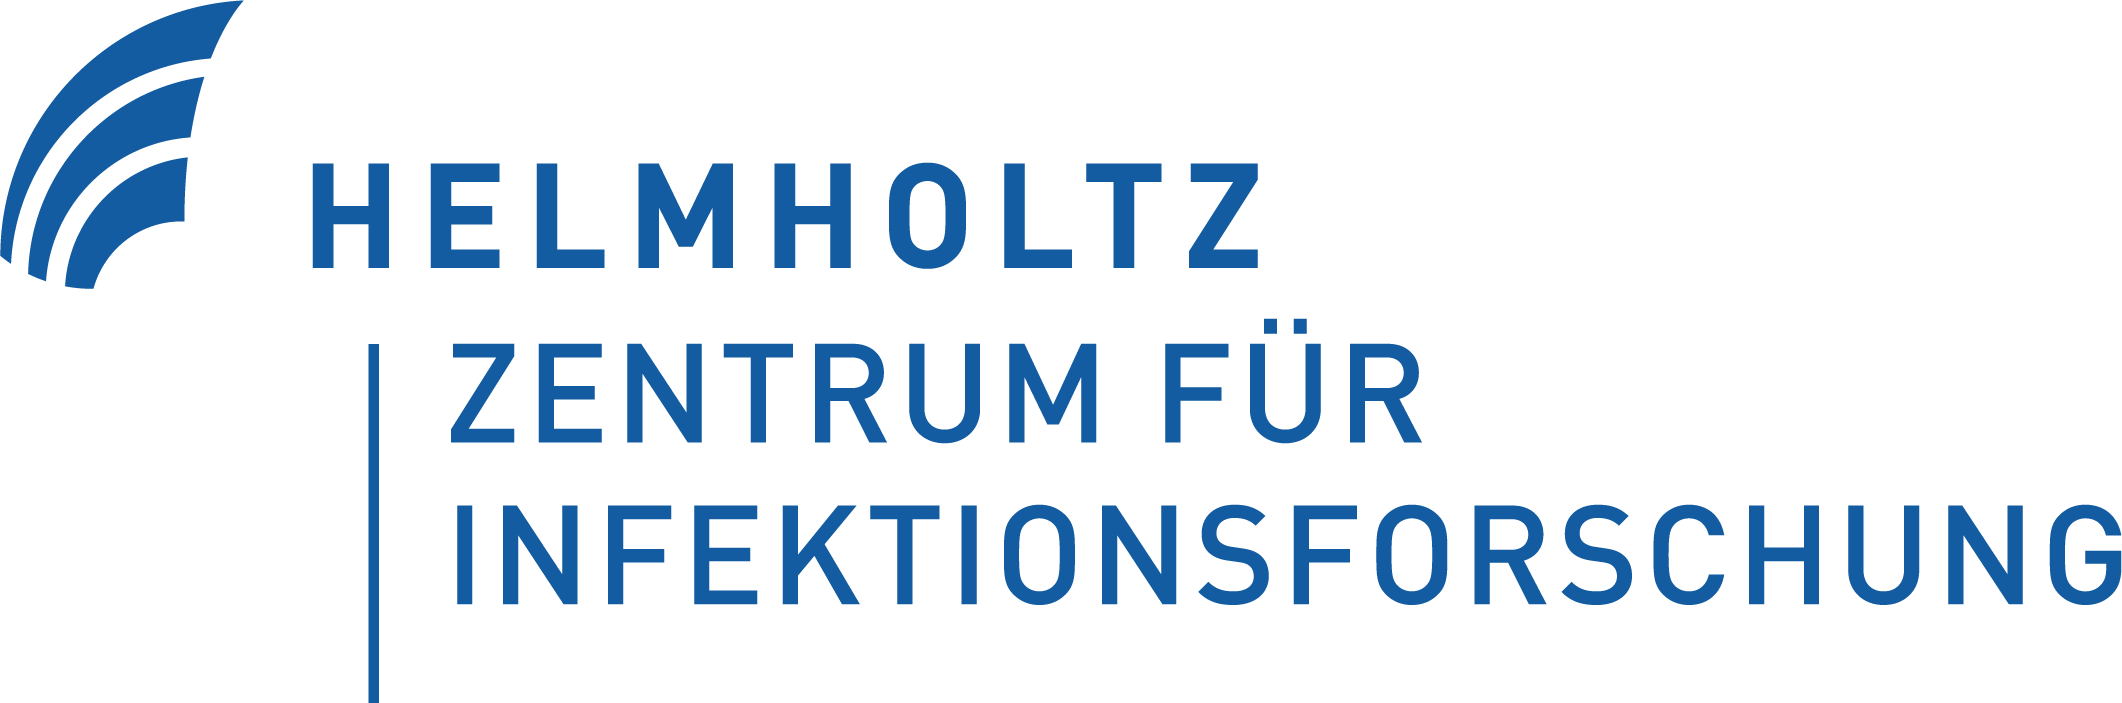 helmholtz centre for infection